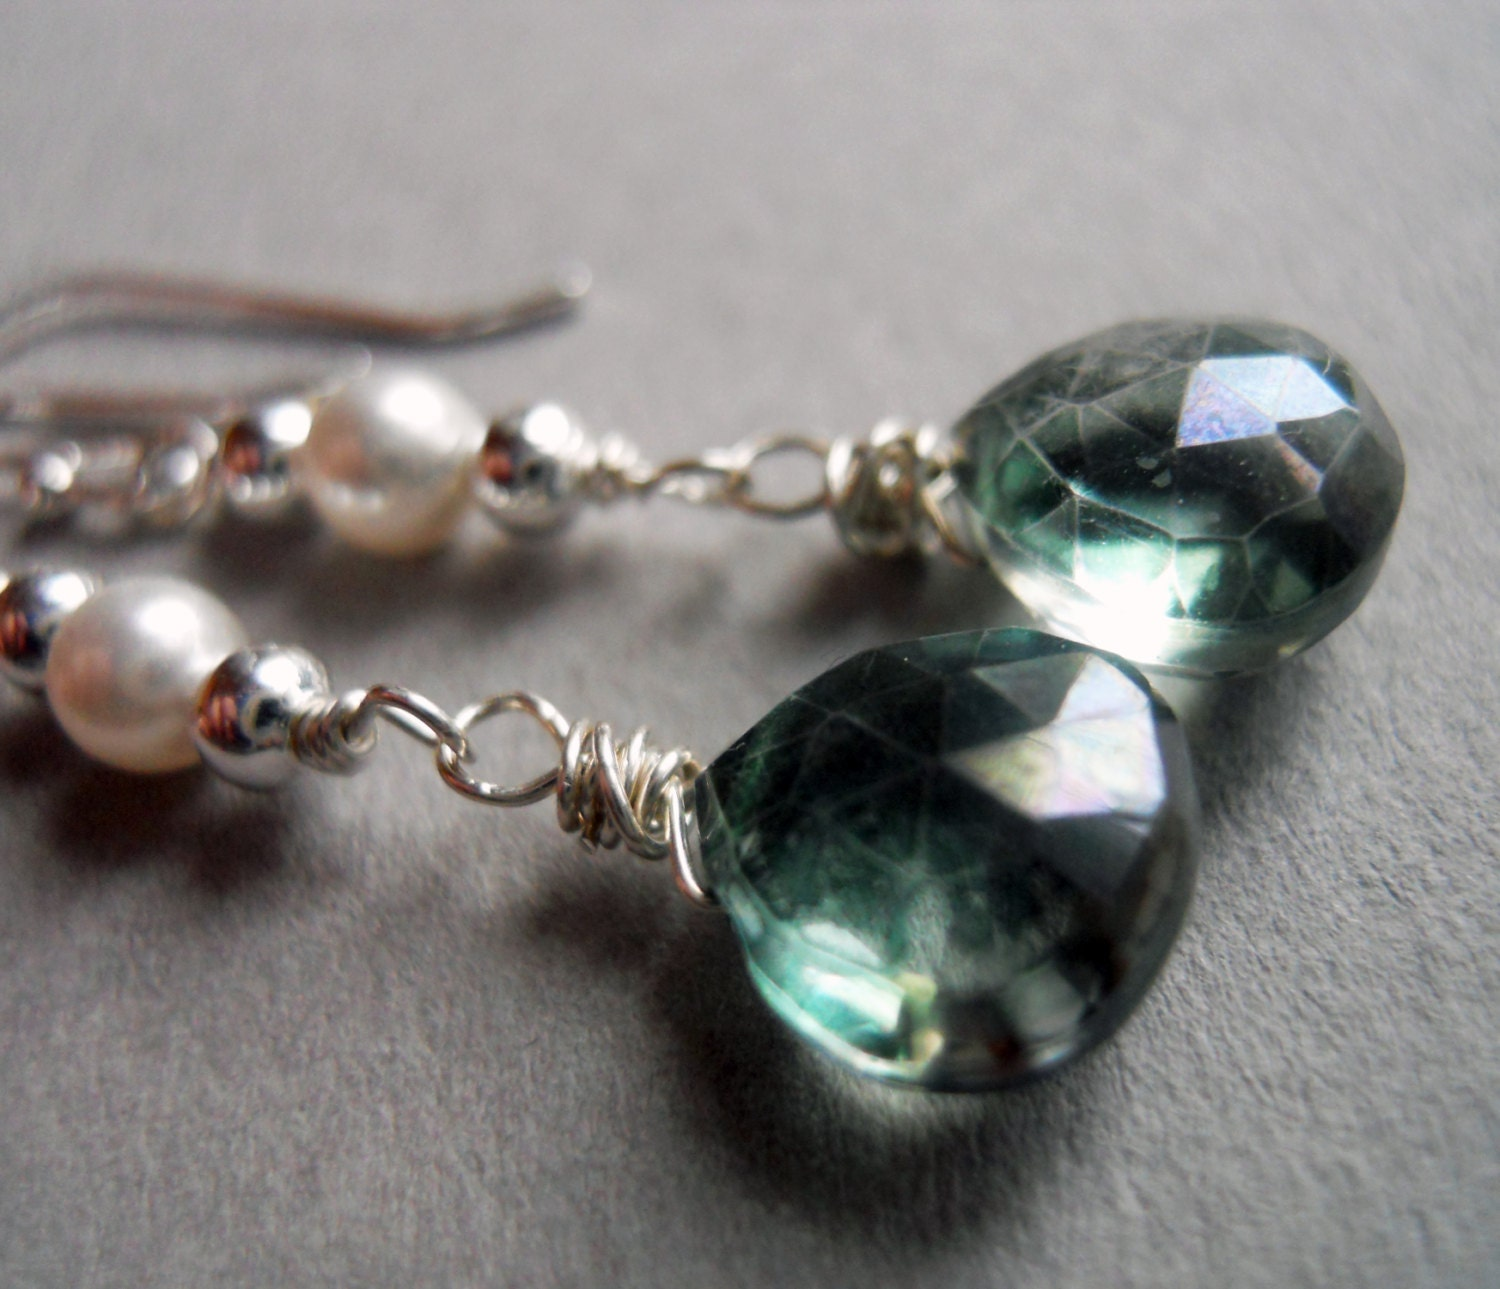 Green Mystic Quartz and Pearl earrings - $32.00 USD